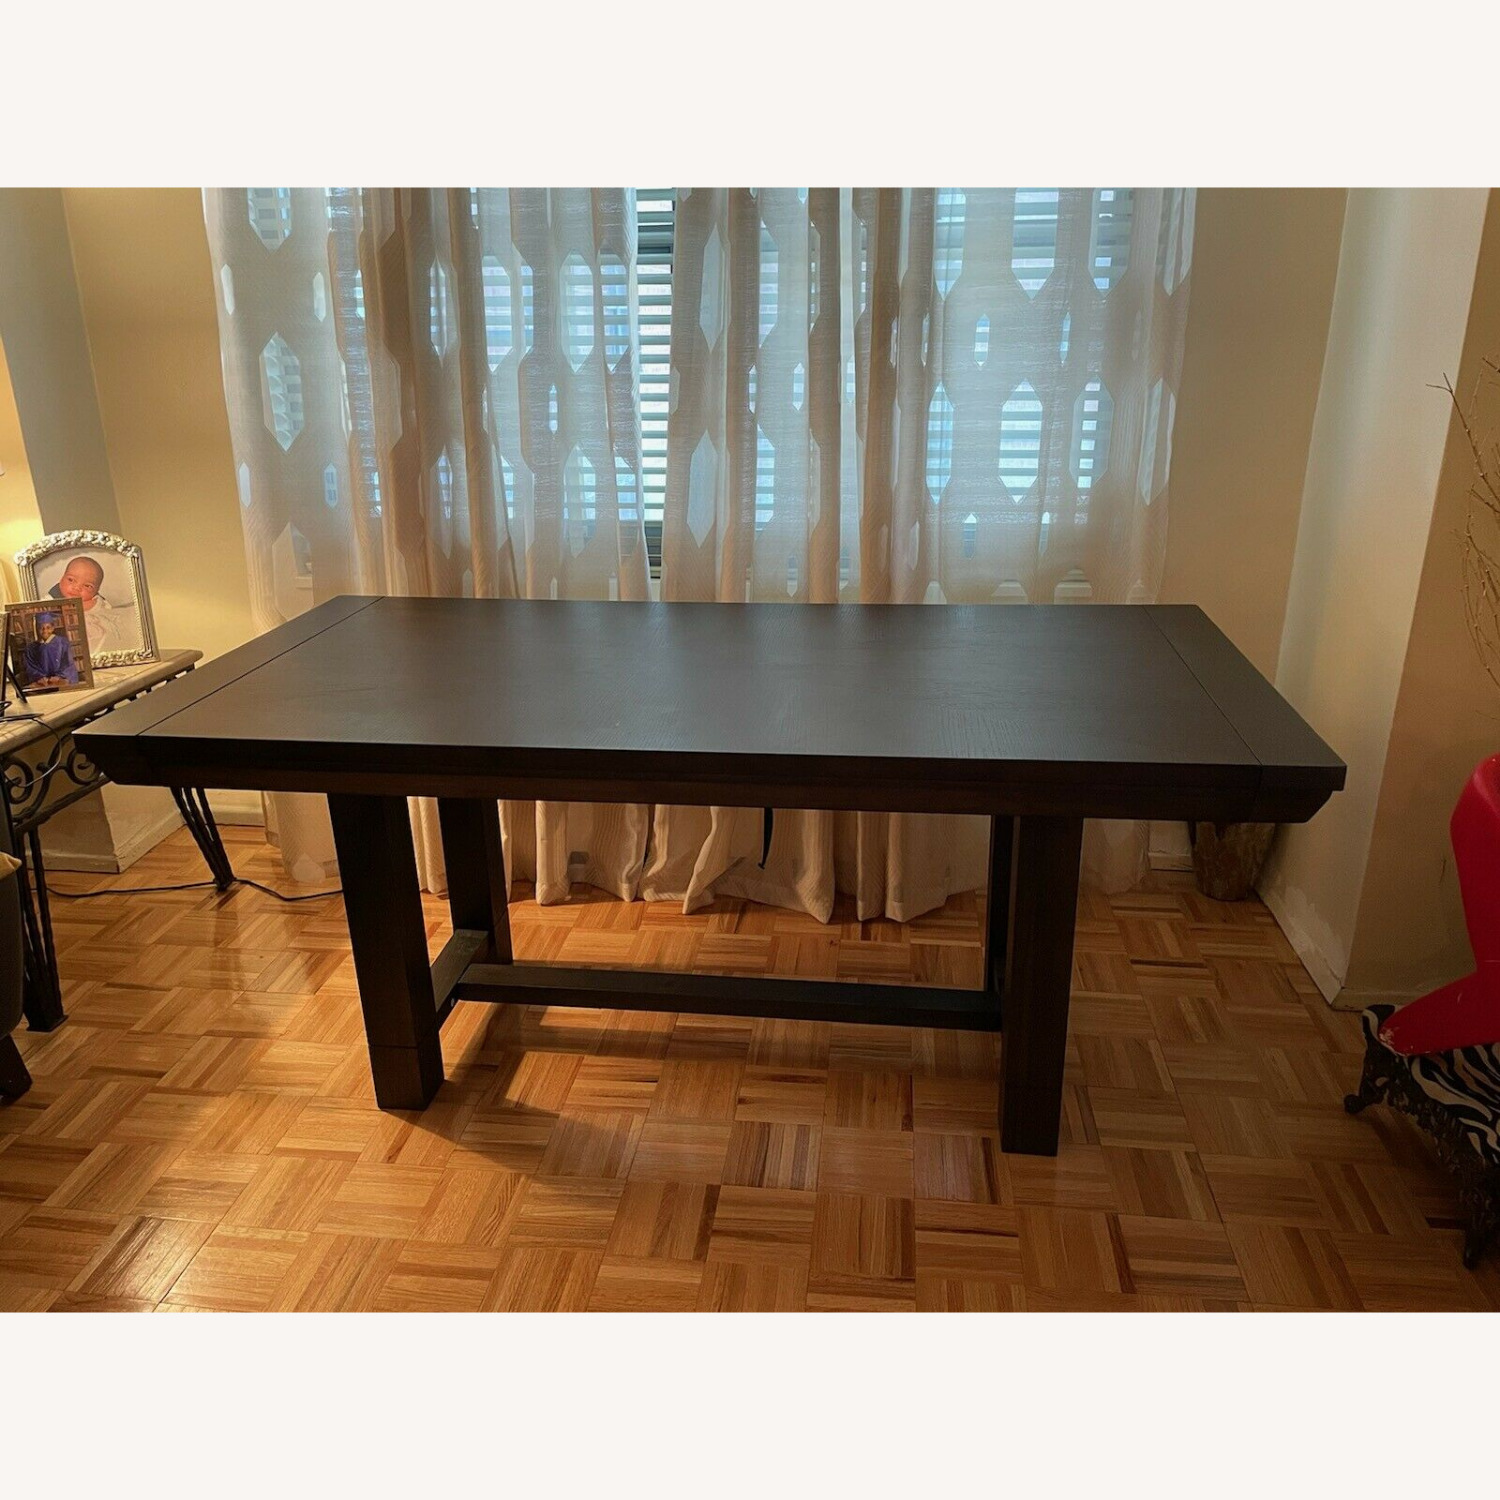 Ashley Furniture Dellbeck Extendable Dining Table - image-5